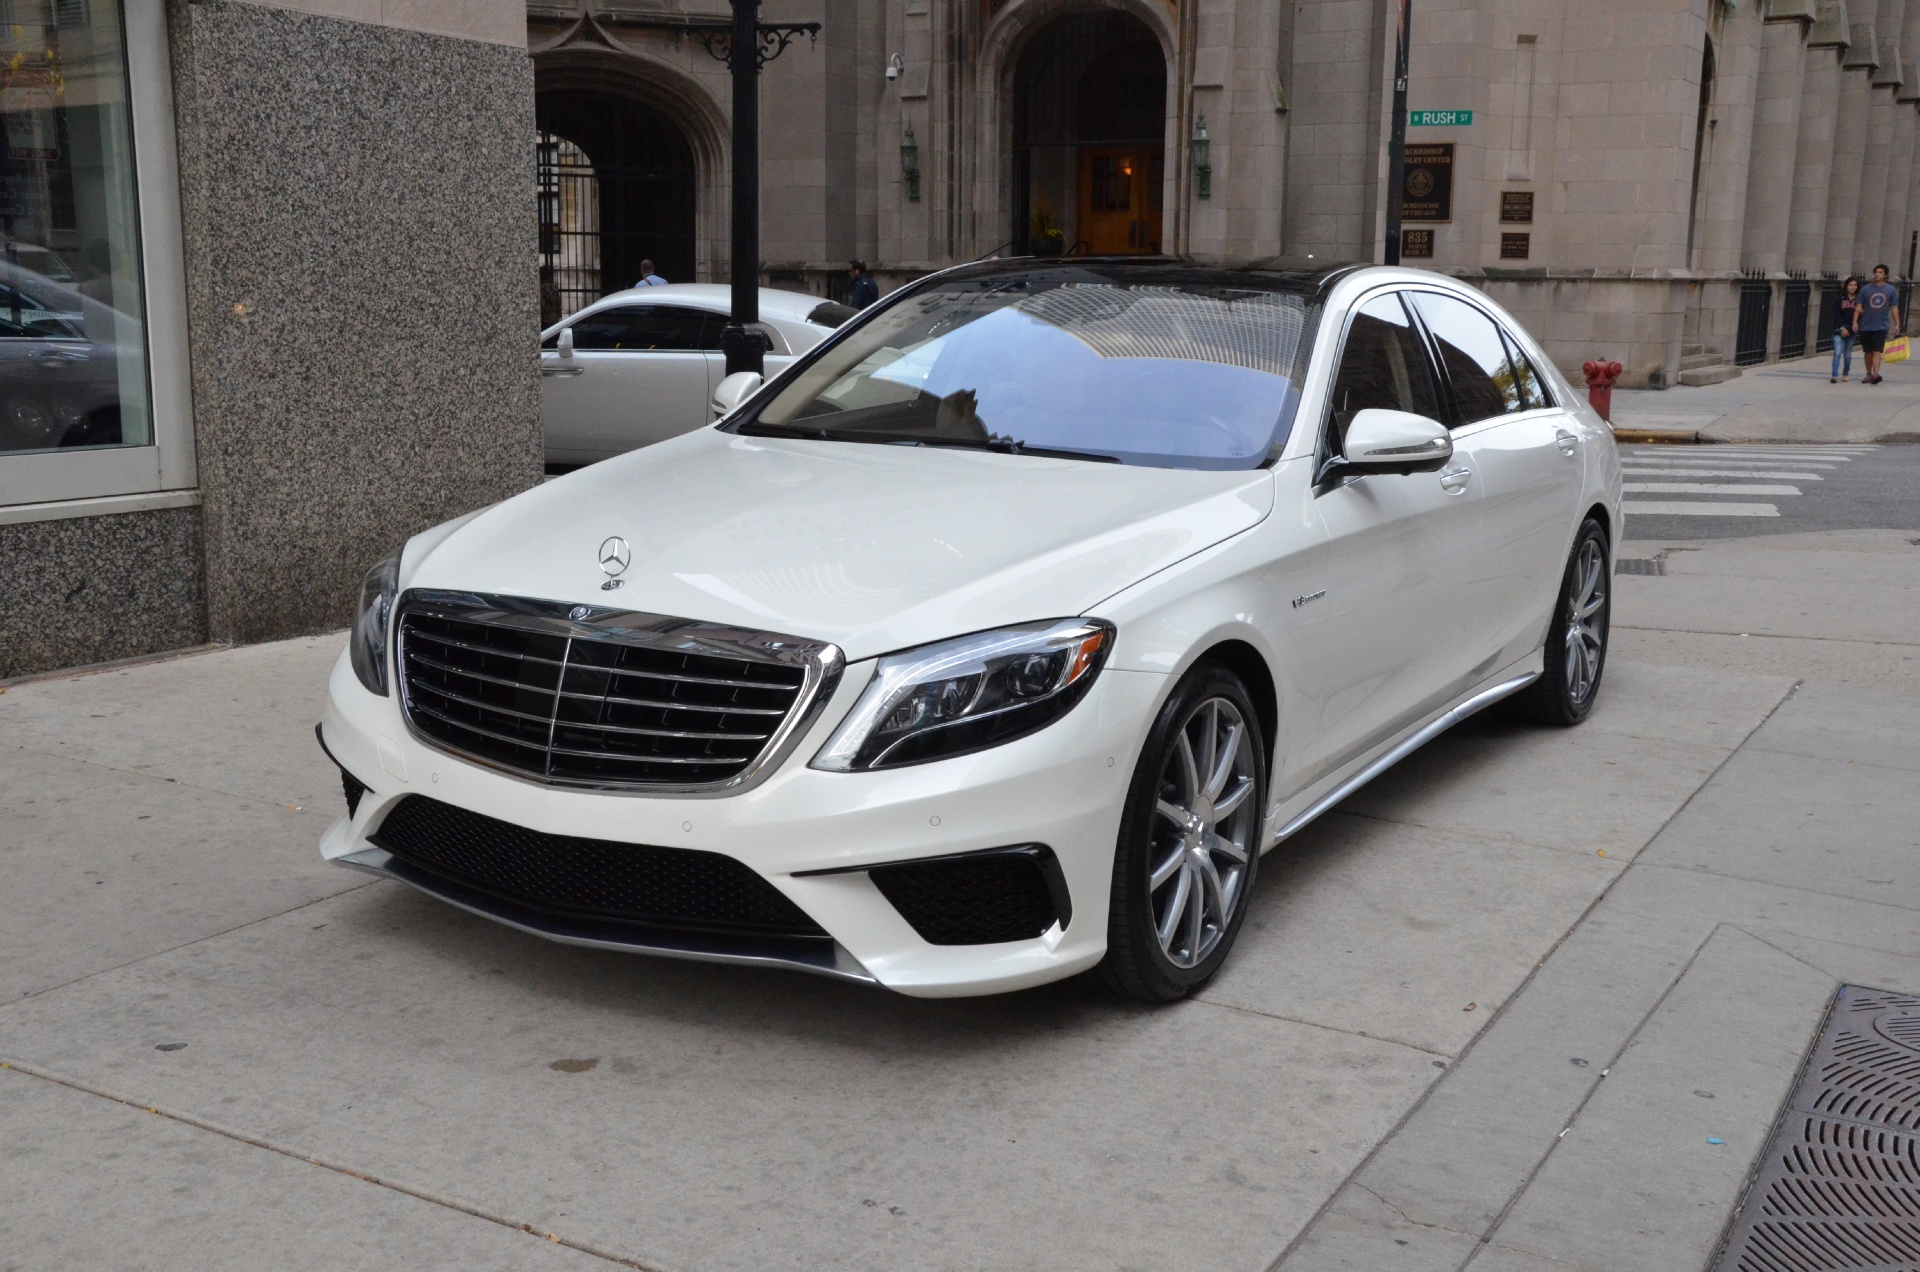 2015 mercedes benz s class s63 amg used bentley used for New mercedes benz s class 2015